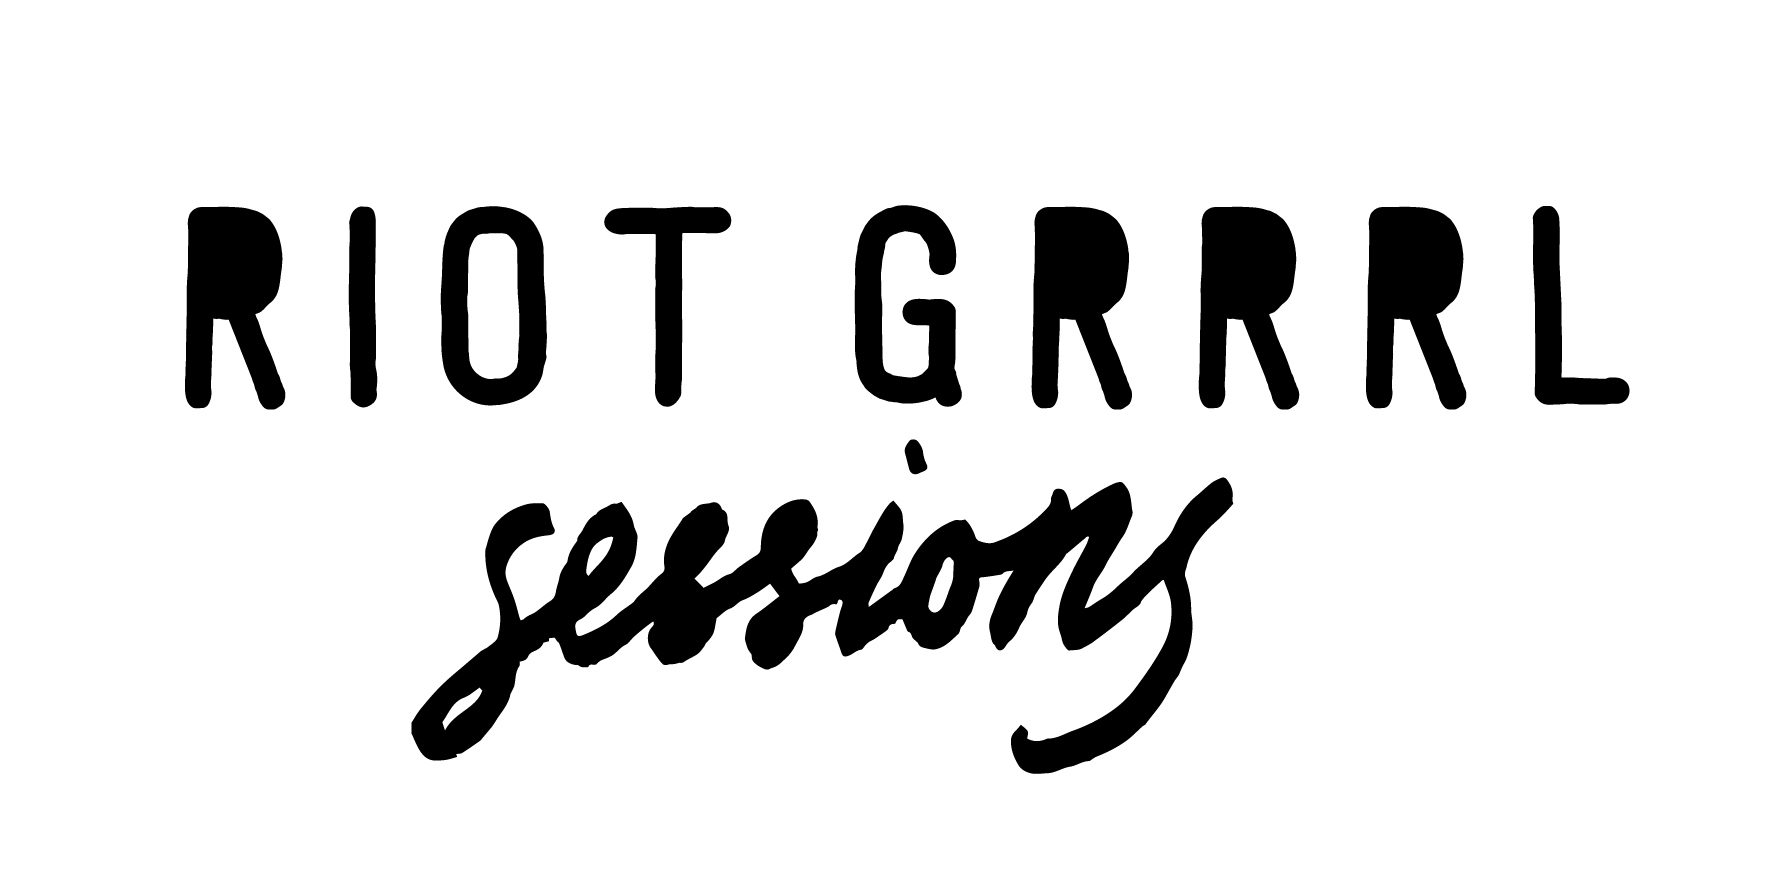 The First Session – Riot Grrrl Sessions